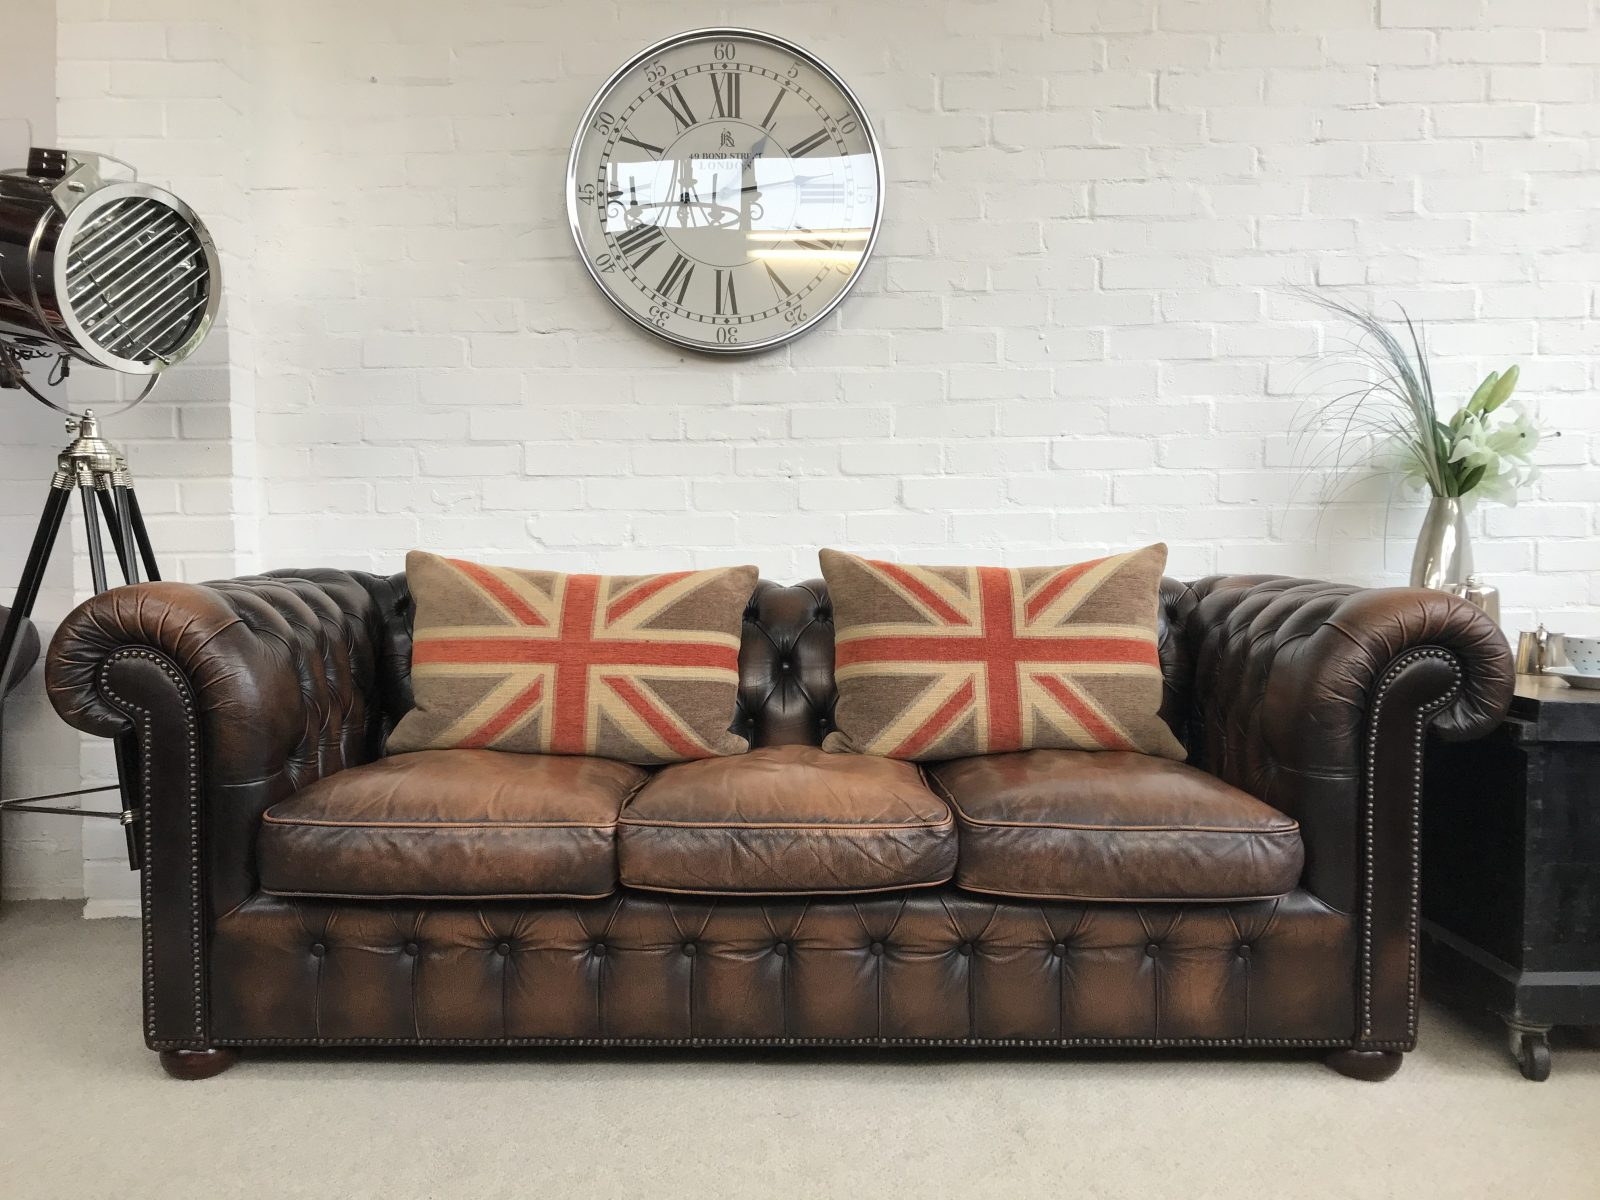 Stunning Vintage Antique Brown Chesterfield Sofa…..SOLD.